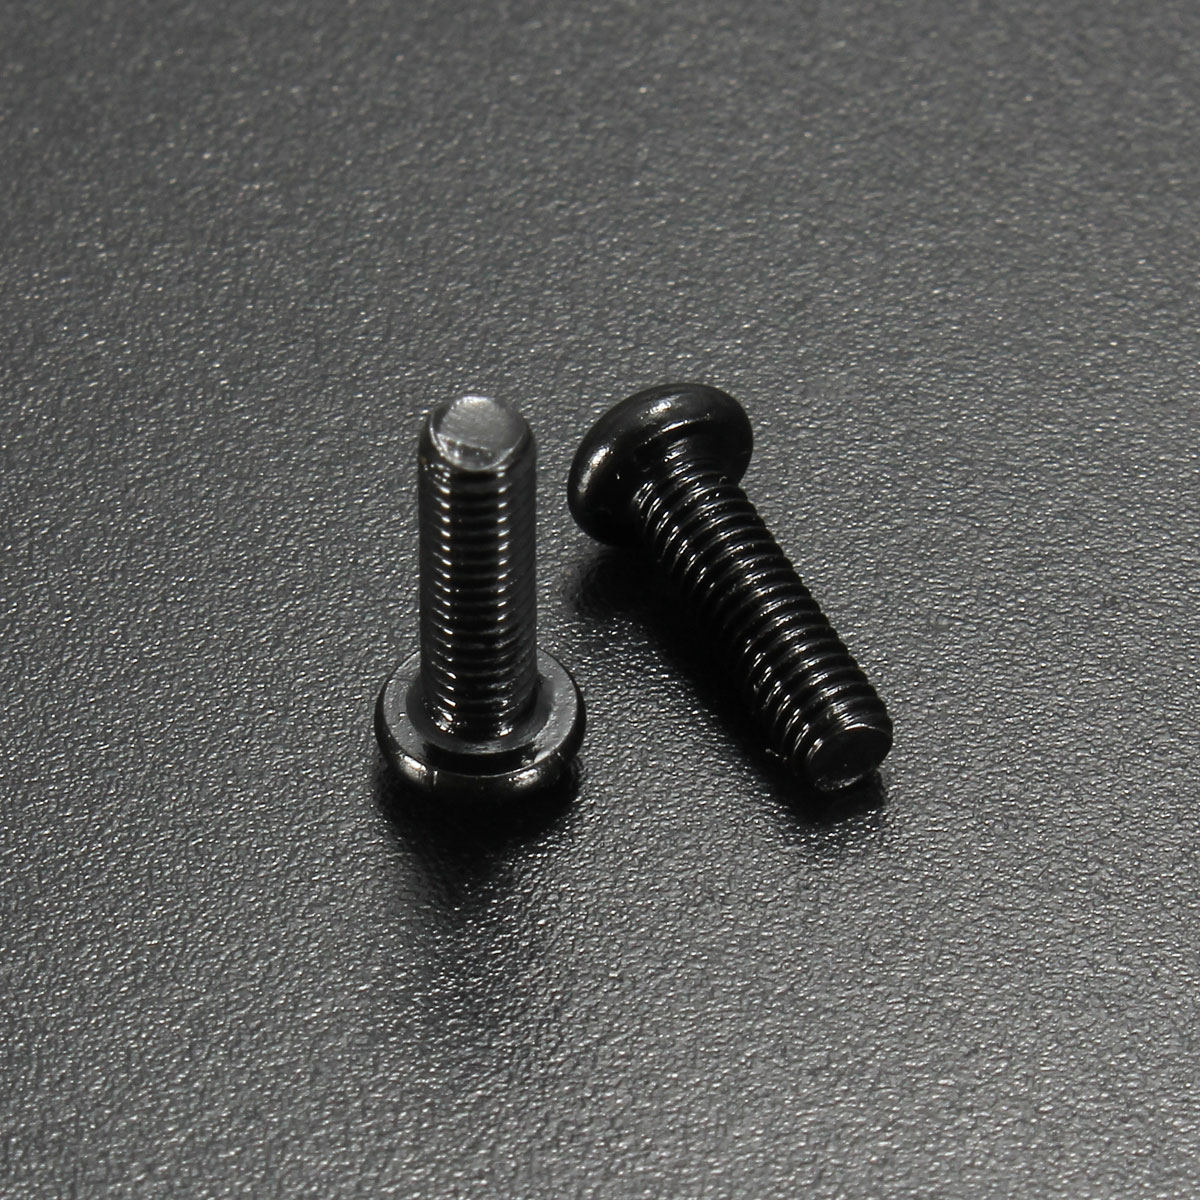 Suleve™ M3CH1 100Pcs M3 Carbon Steel Button Head Hex Socket Cap Screw Bolt Metric Allen Bolt